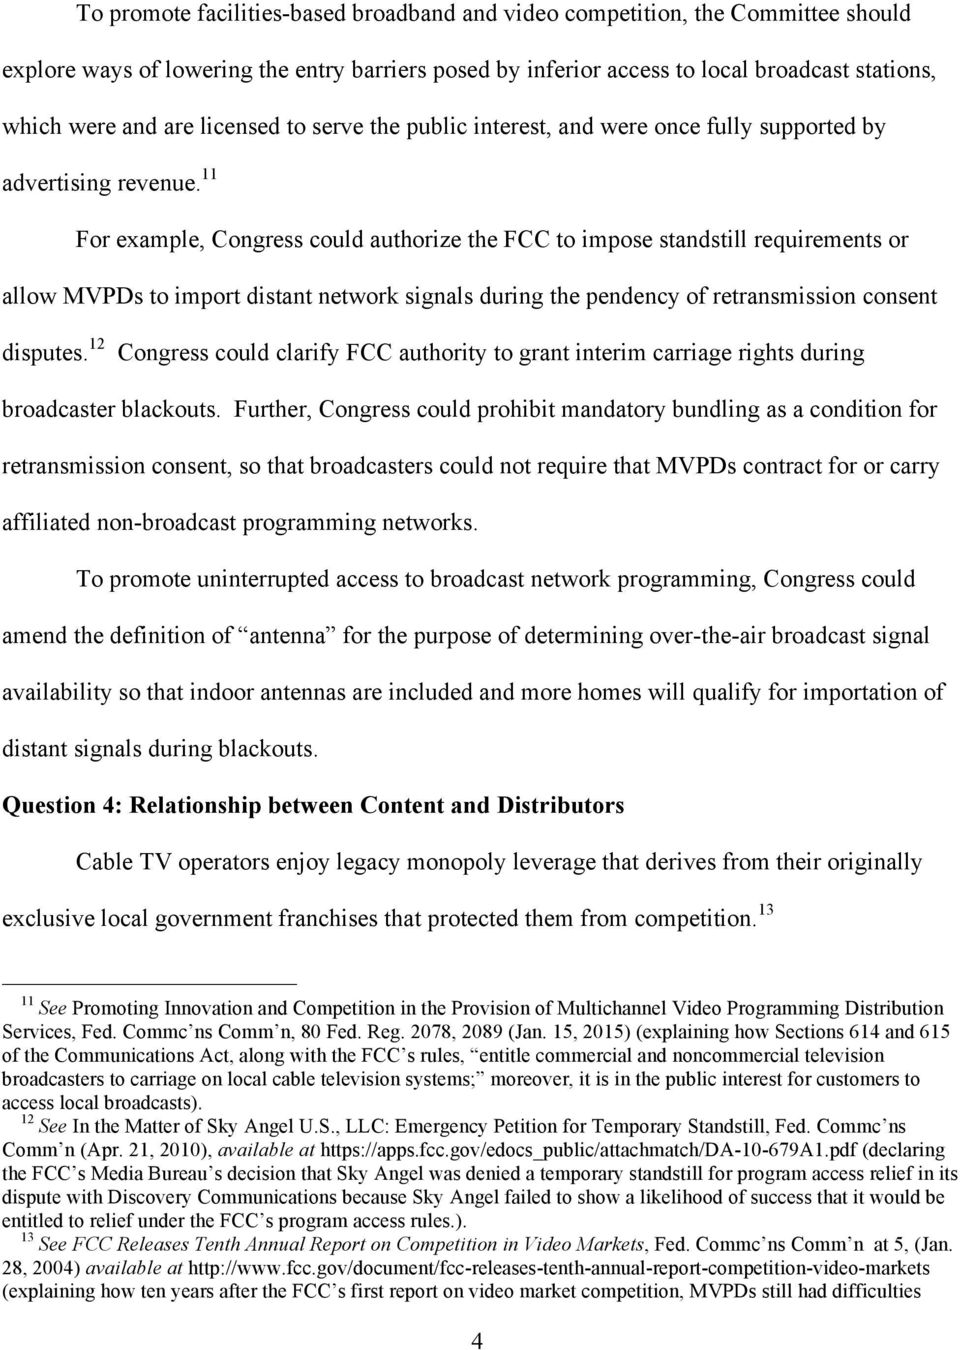 11 For example, Congress could authorize the FCC to impose standstill requirements or allow MVPDs to import distant network signals during the pendency of retransmission consent disputes.